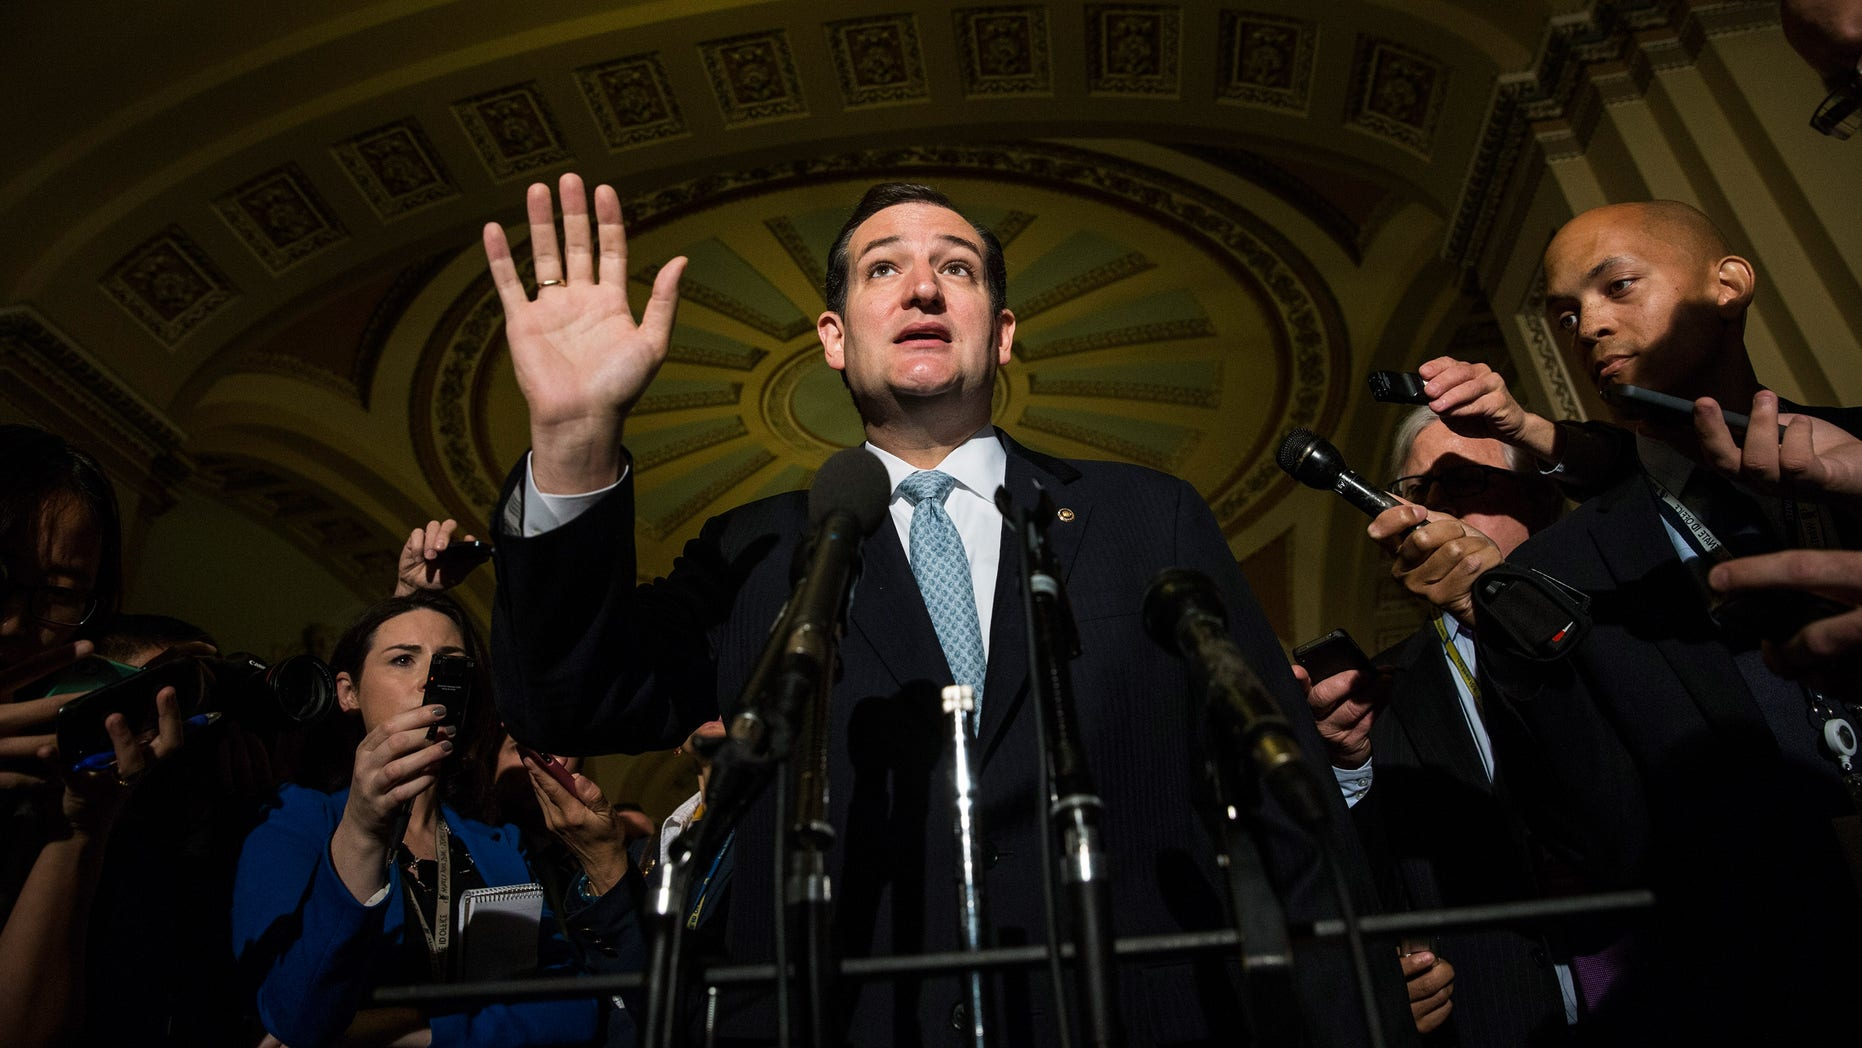 WASHINGTON, DC - OCTOBER 16:  U.S. Sen. Ted Cruz (R-TX) speaks after meeting with Republican senators regarding a bipartisan solution for the pending budget and debt limit impasse at the U.S. Capitol October 16, 2013 in Washington, DC. The Senate announced that it had reached a bipartisan deal on funding the federal government and the extending the nation's debt limit after 16 days of a government shutdown.  (Photo by Andrew Burton/Getty Images)